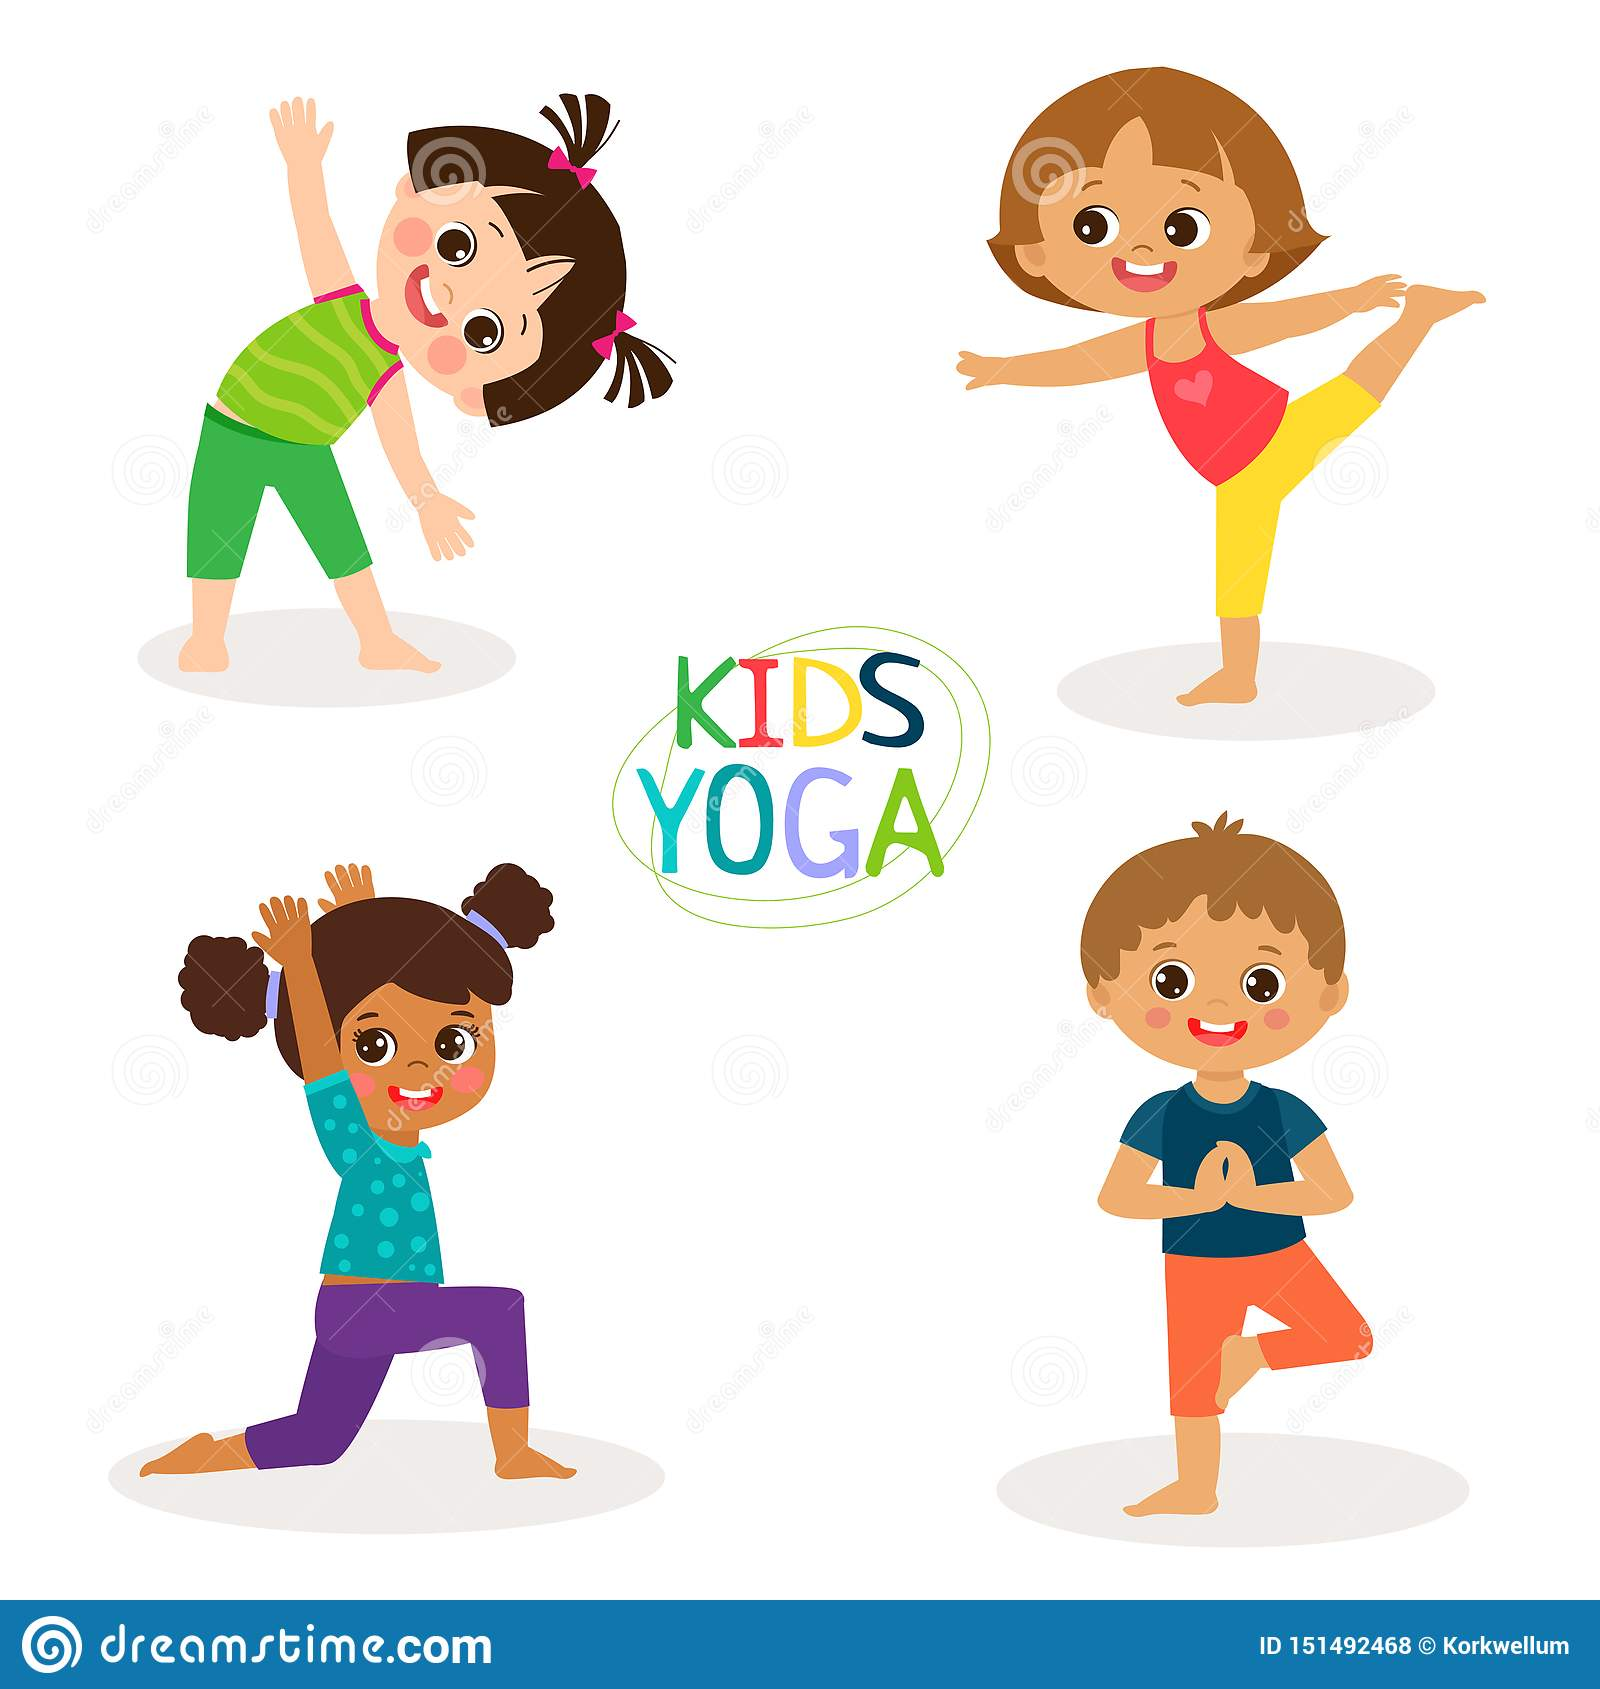 Yoga Kids Poses Vector Cartoon Illustration Little Girls And Boys Doing Yoga Set Stock Vector Illustration Of Flexibility Isolated 151492468